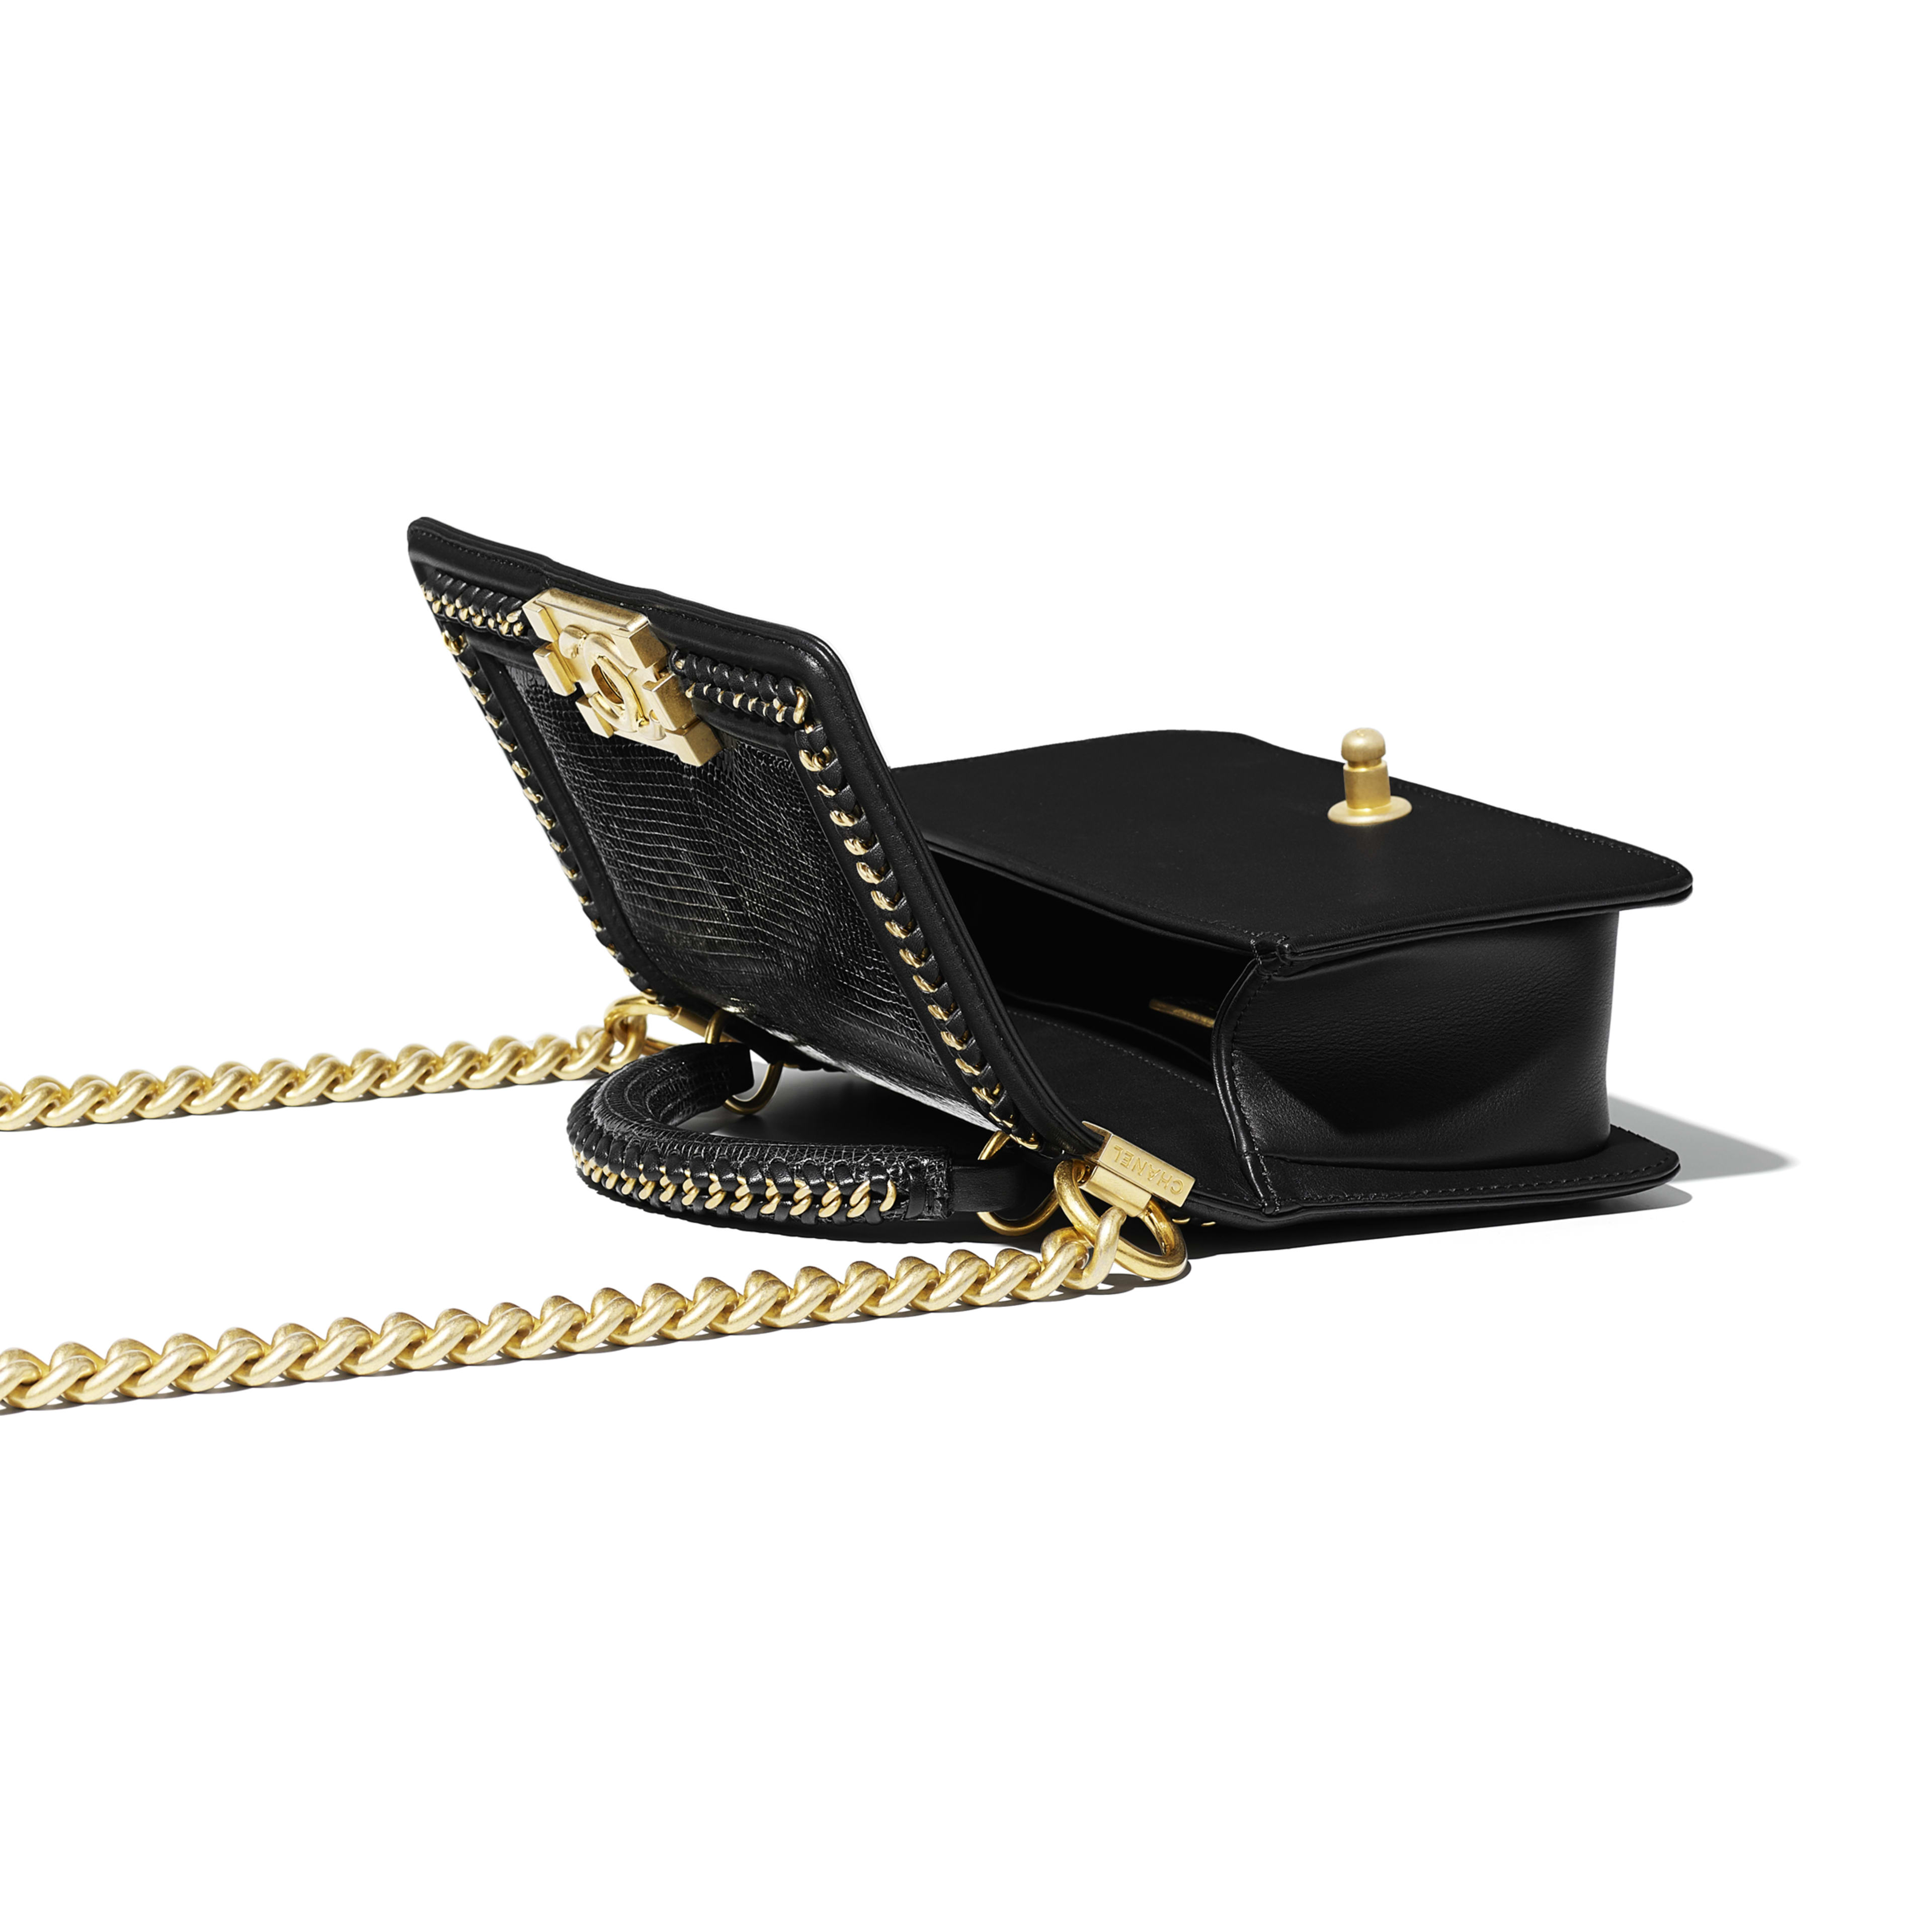 BOY CHANEL Flap Bag with Handle - Black - Lizard, Calfskin & Gold-Tone Metal - Other view - see full sized version